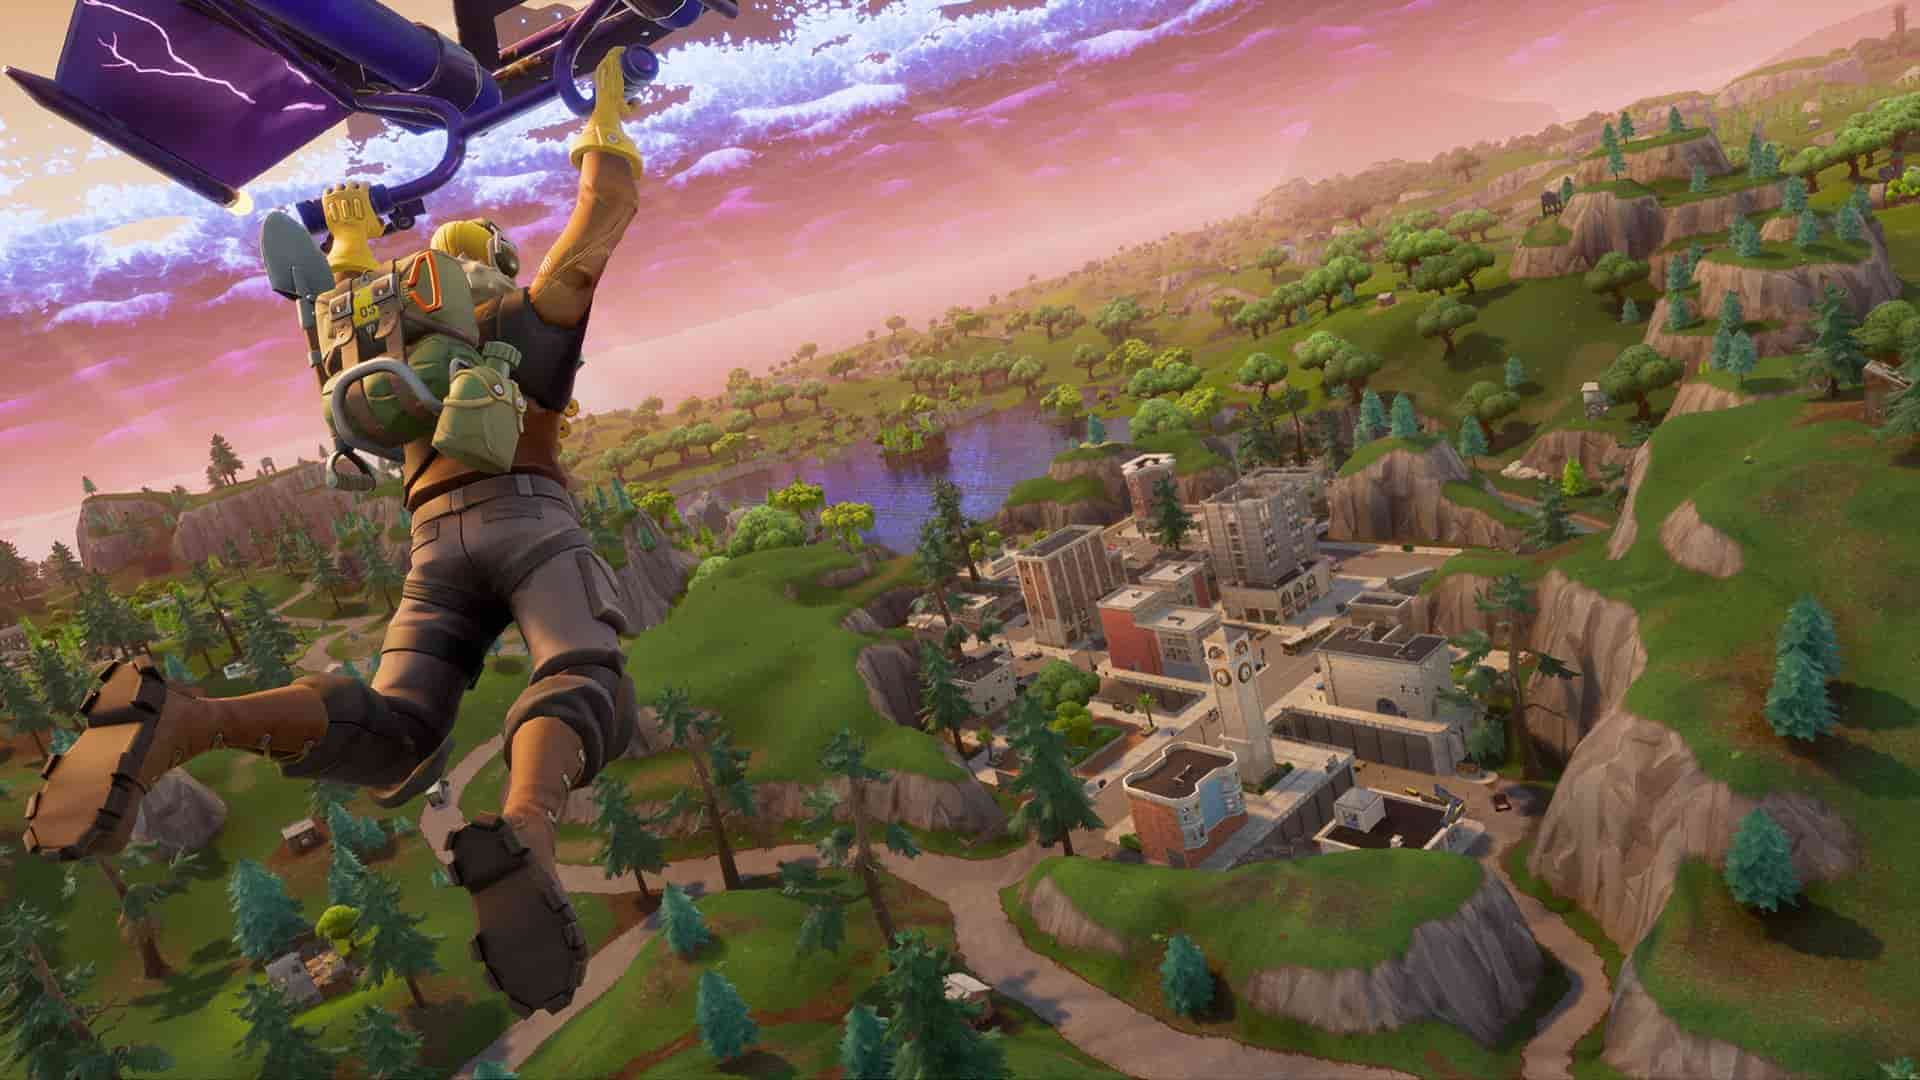 Fortnite 4.0 Update Patch Notes: New Locations, Skins and More